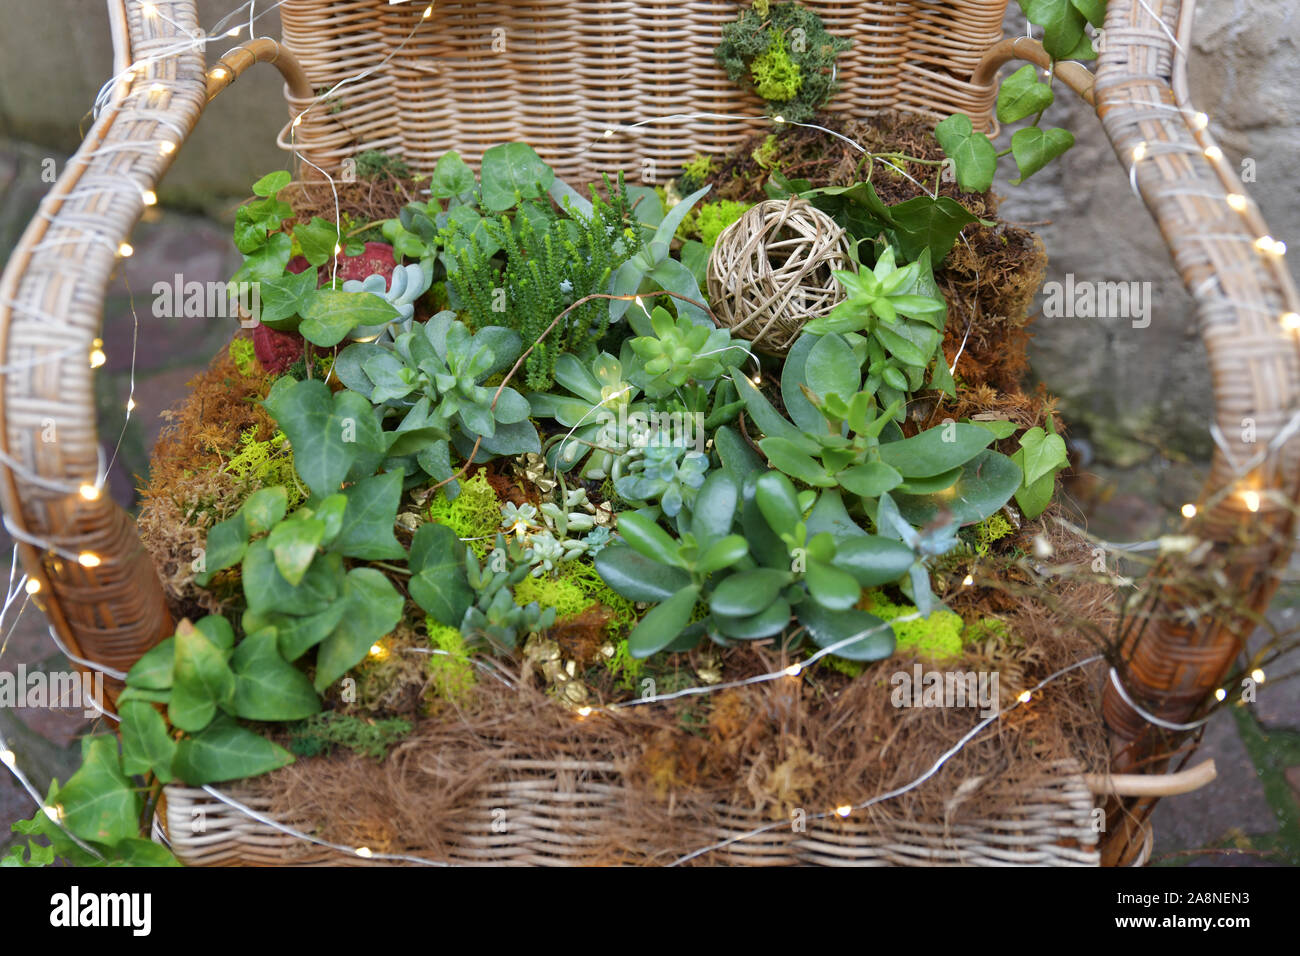 Different Types Of Succulents On A Wicker Chair Stock Photo